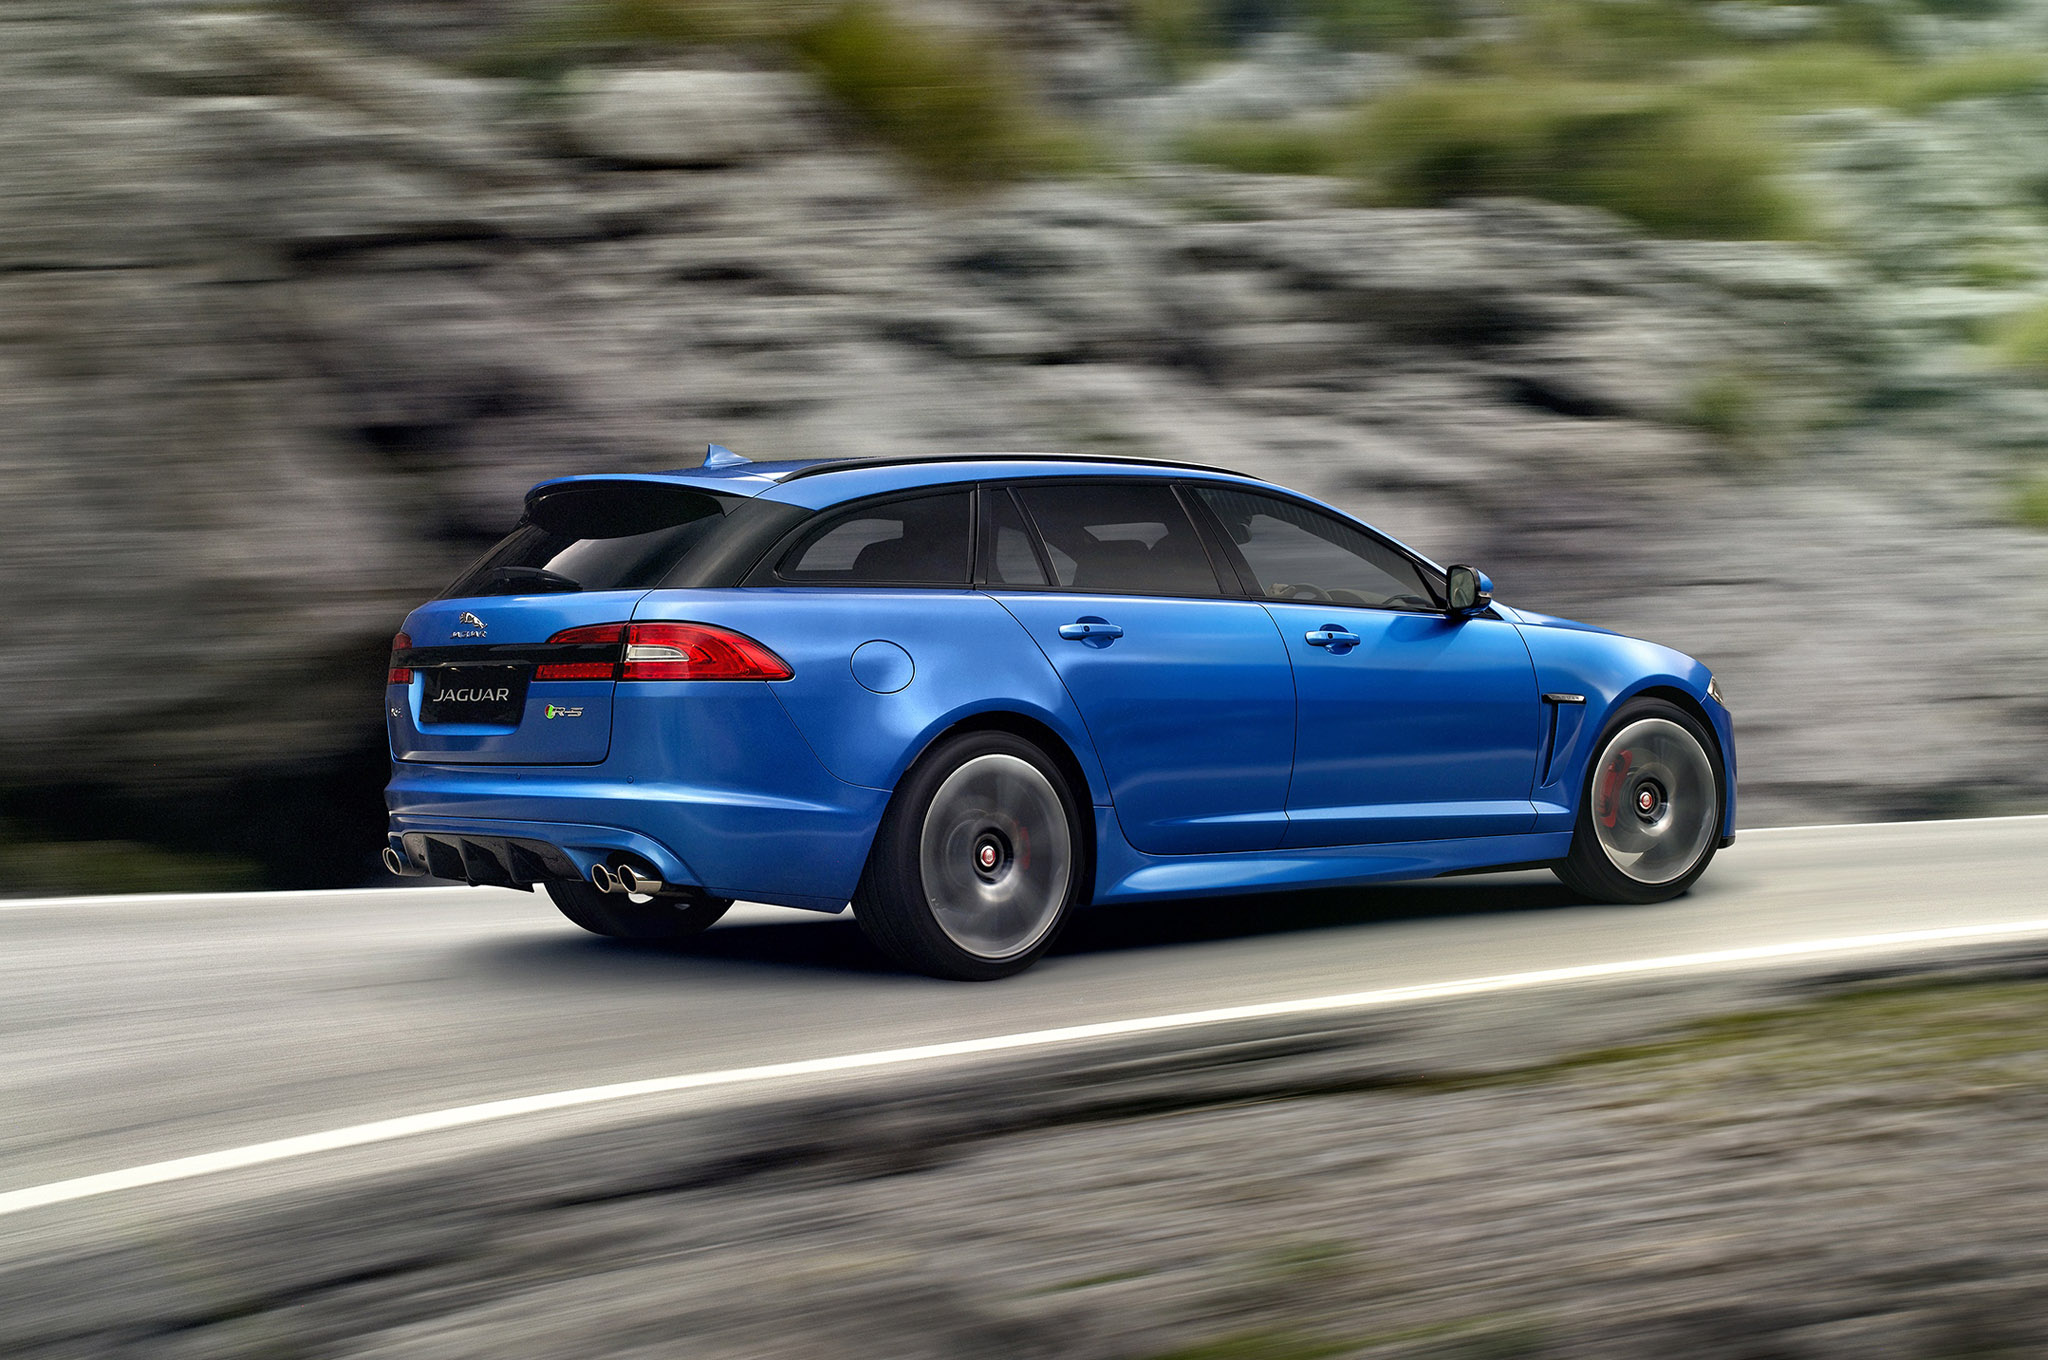 Super Wagon: 2015 Jaguar XFR-S Sportbrake Going to Geneva, but Not U.S.